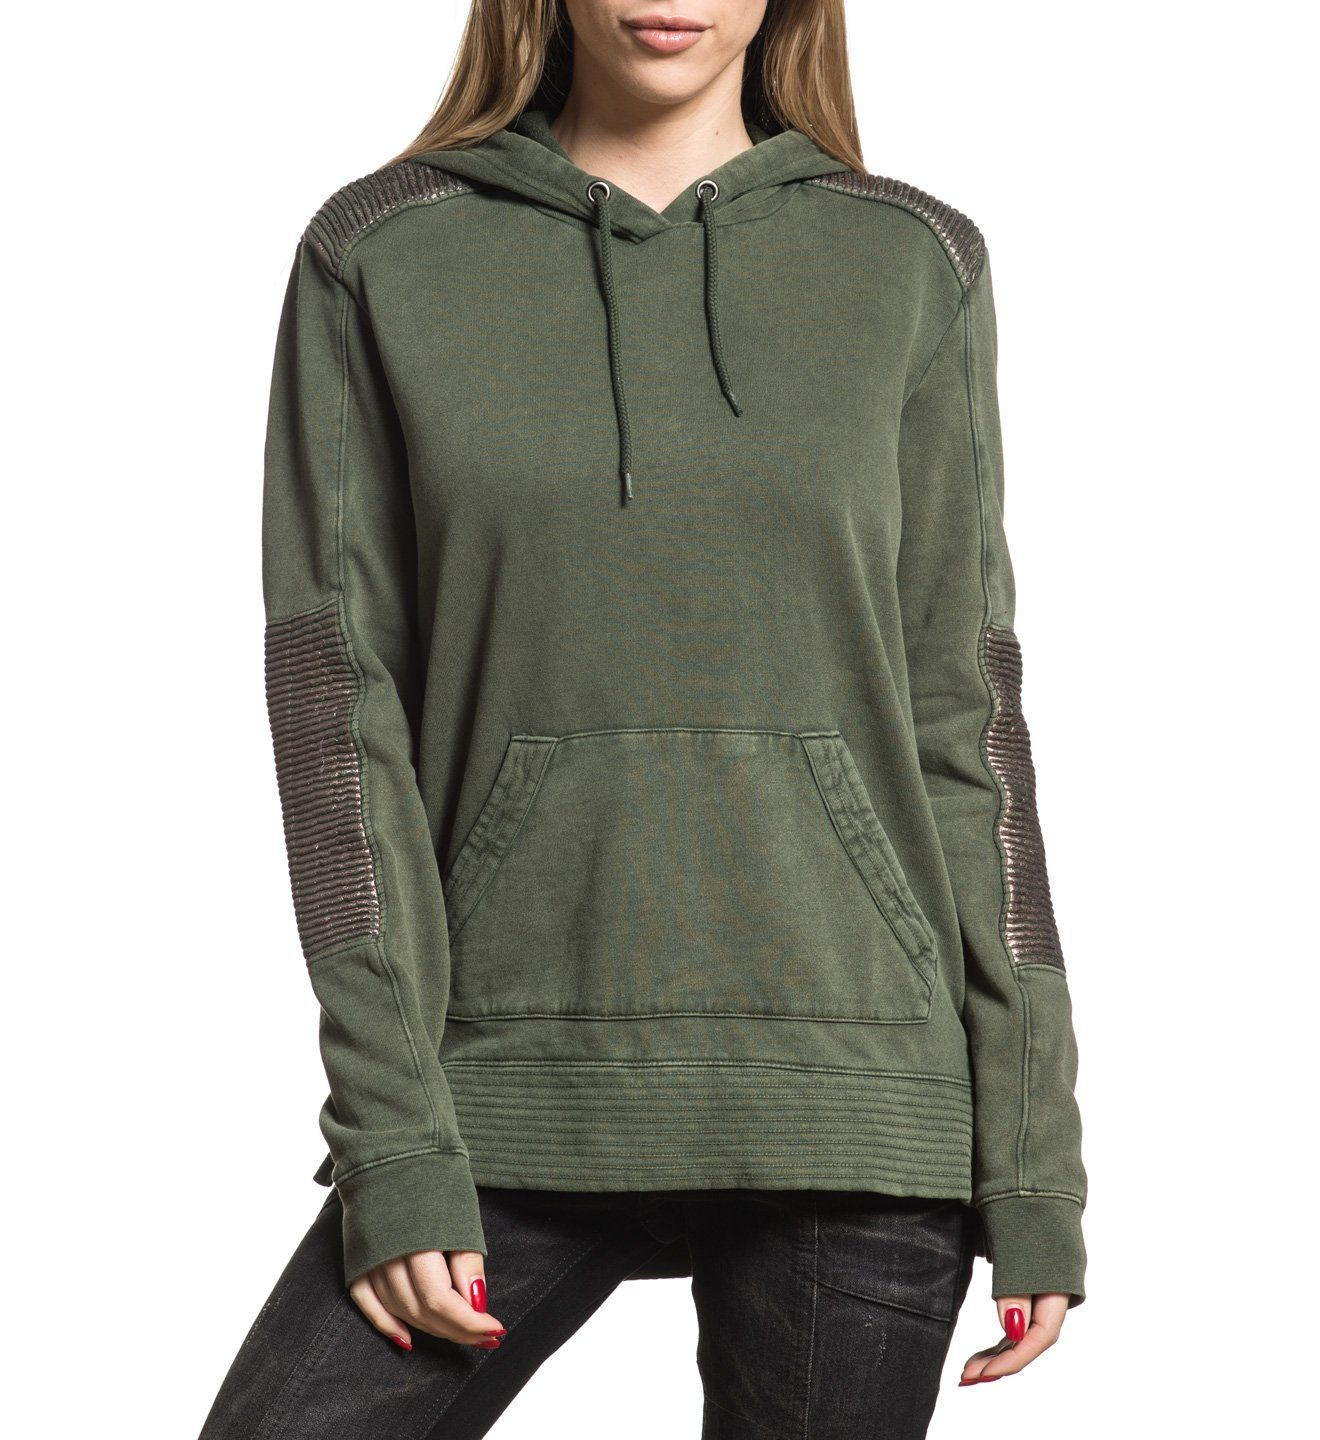 Womens Hooded Sweatshirts - California Motors